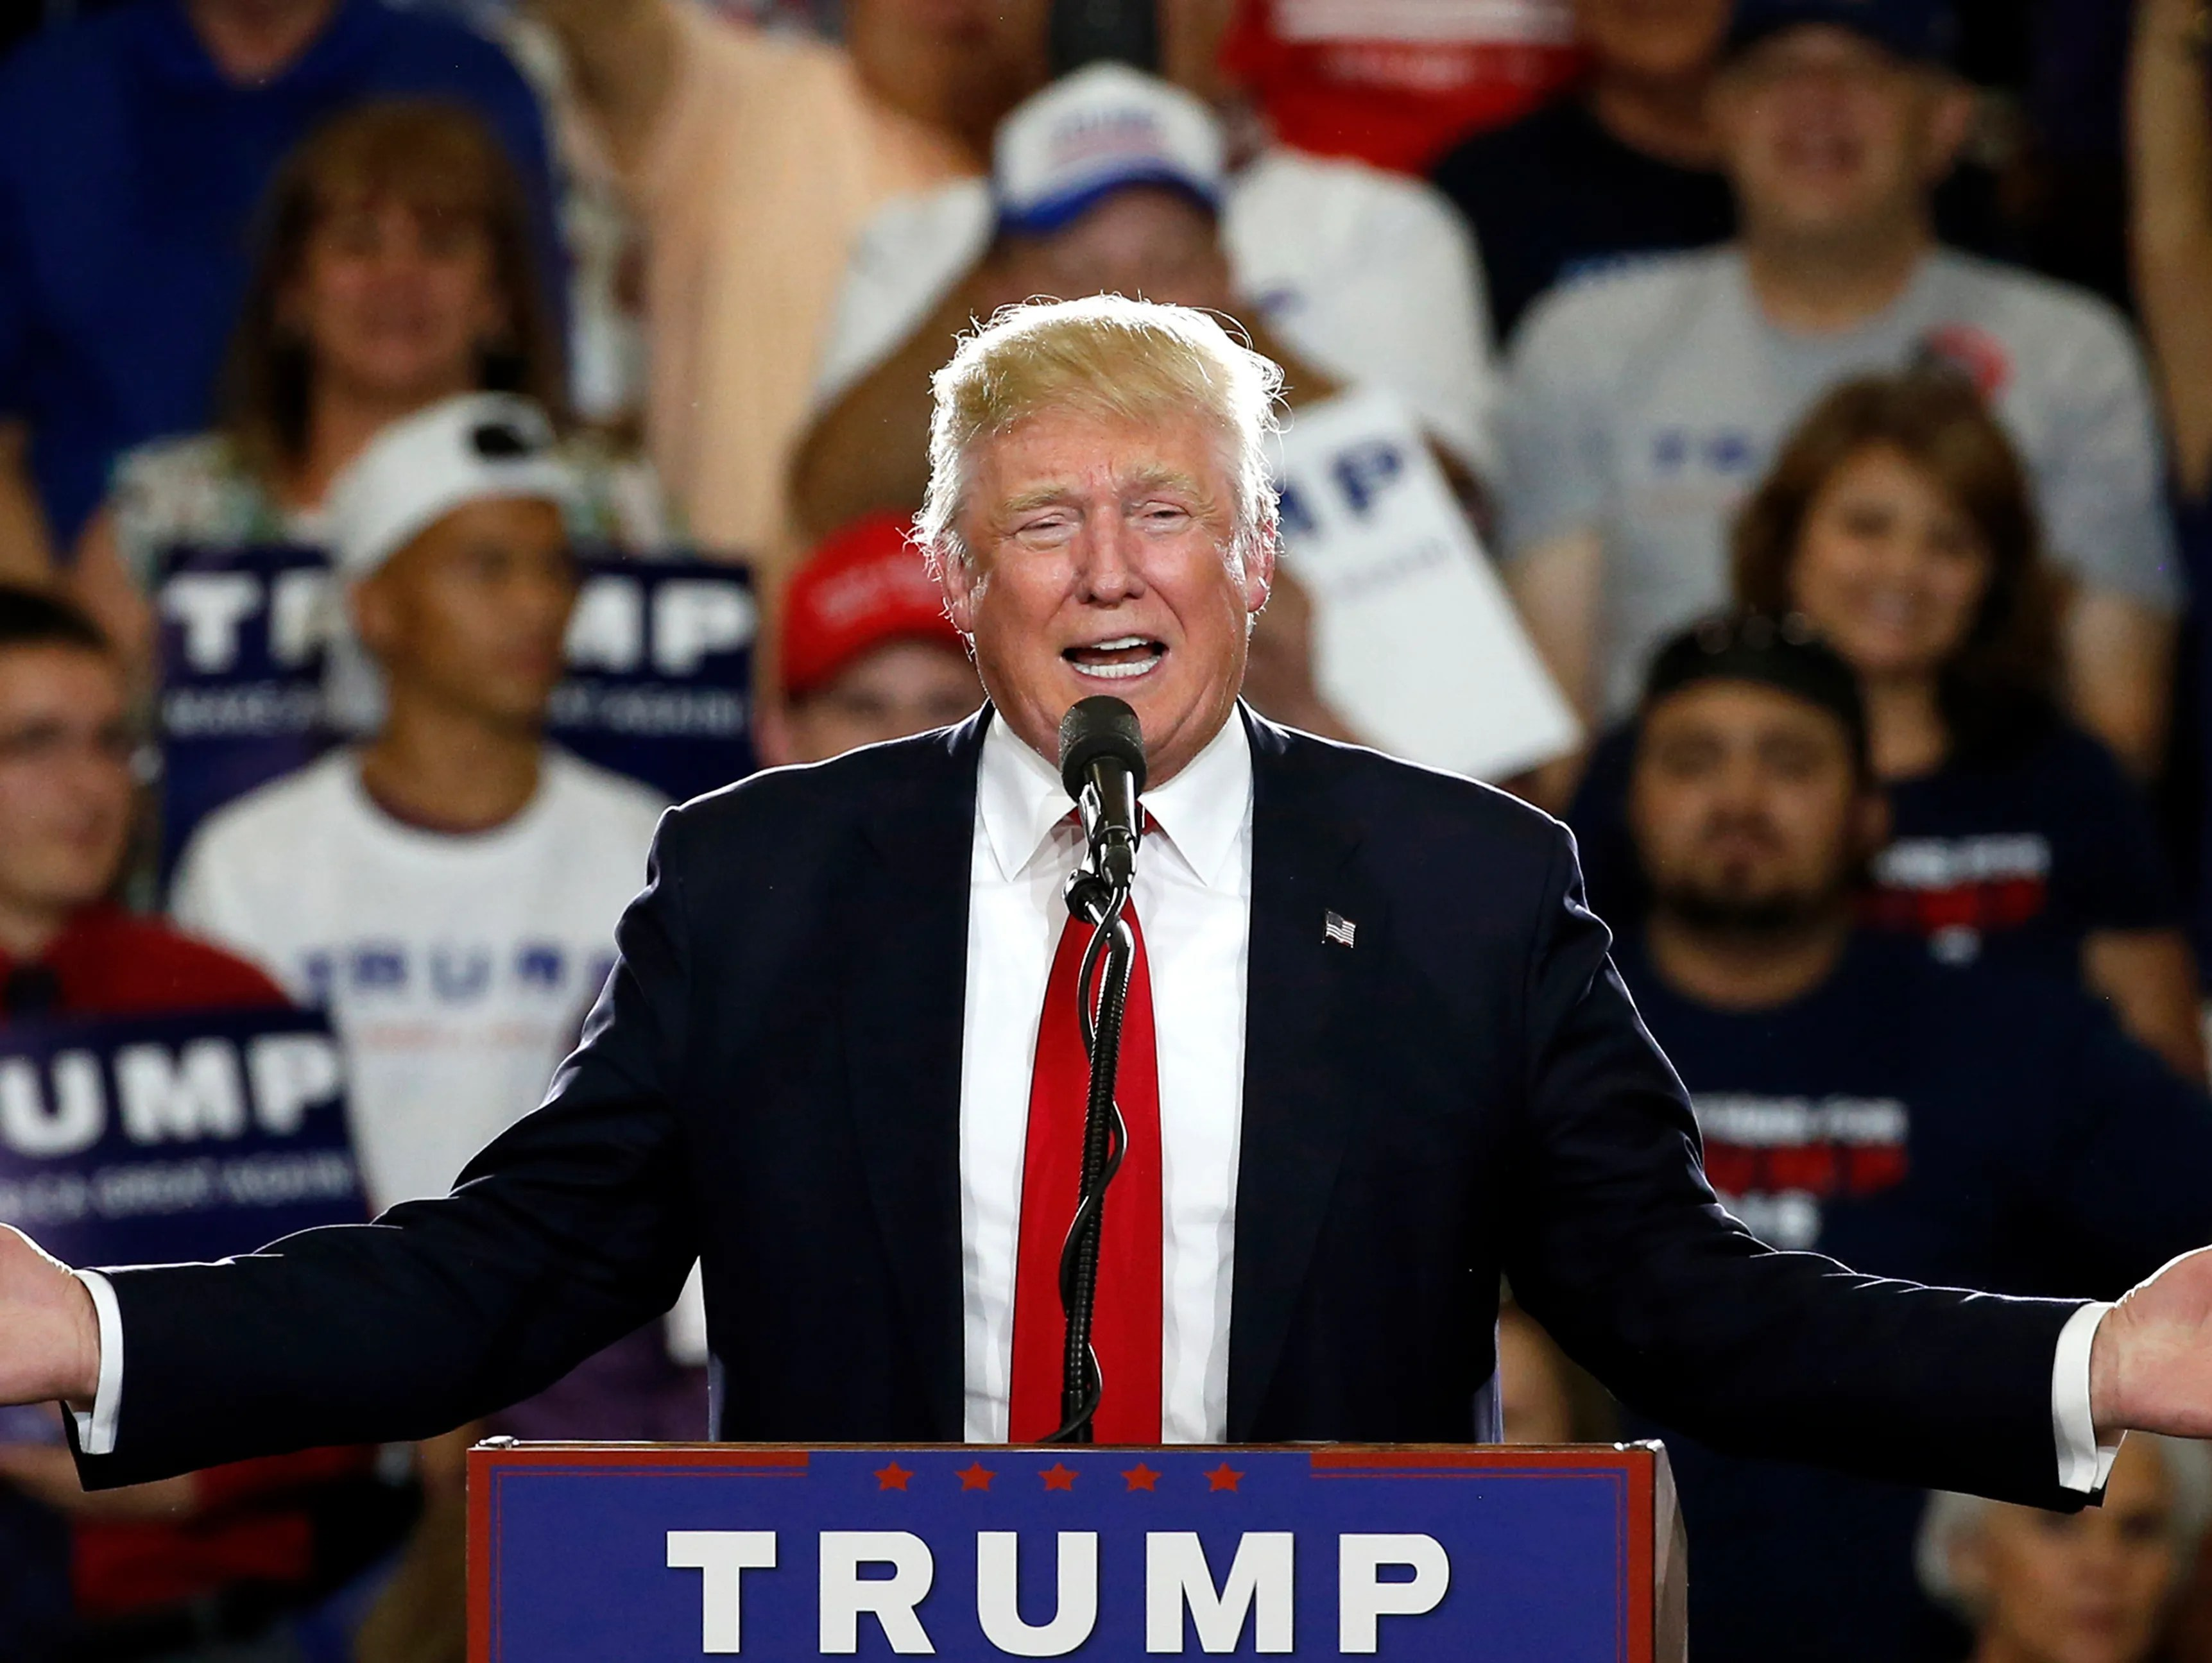 Trump reaches the magic number to clinch nomination